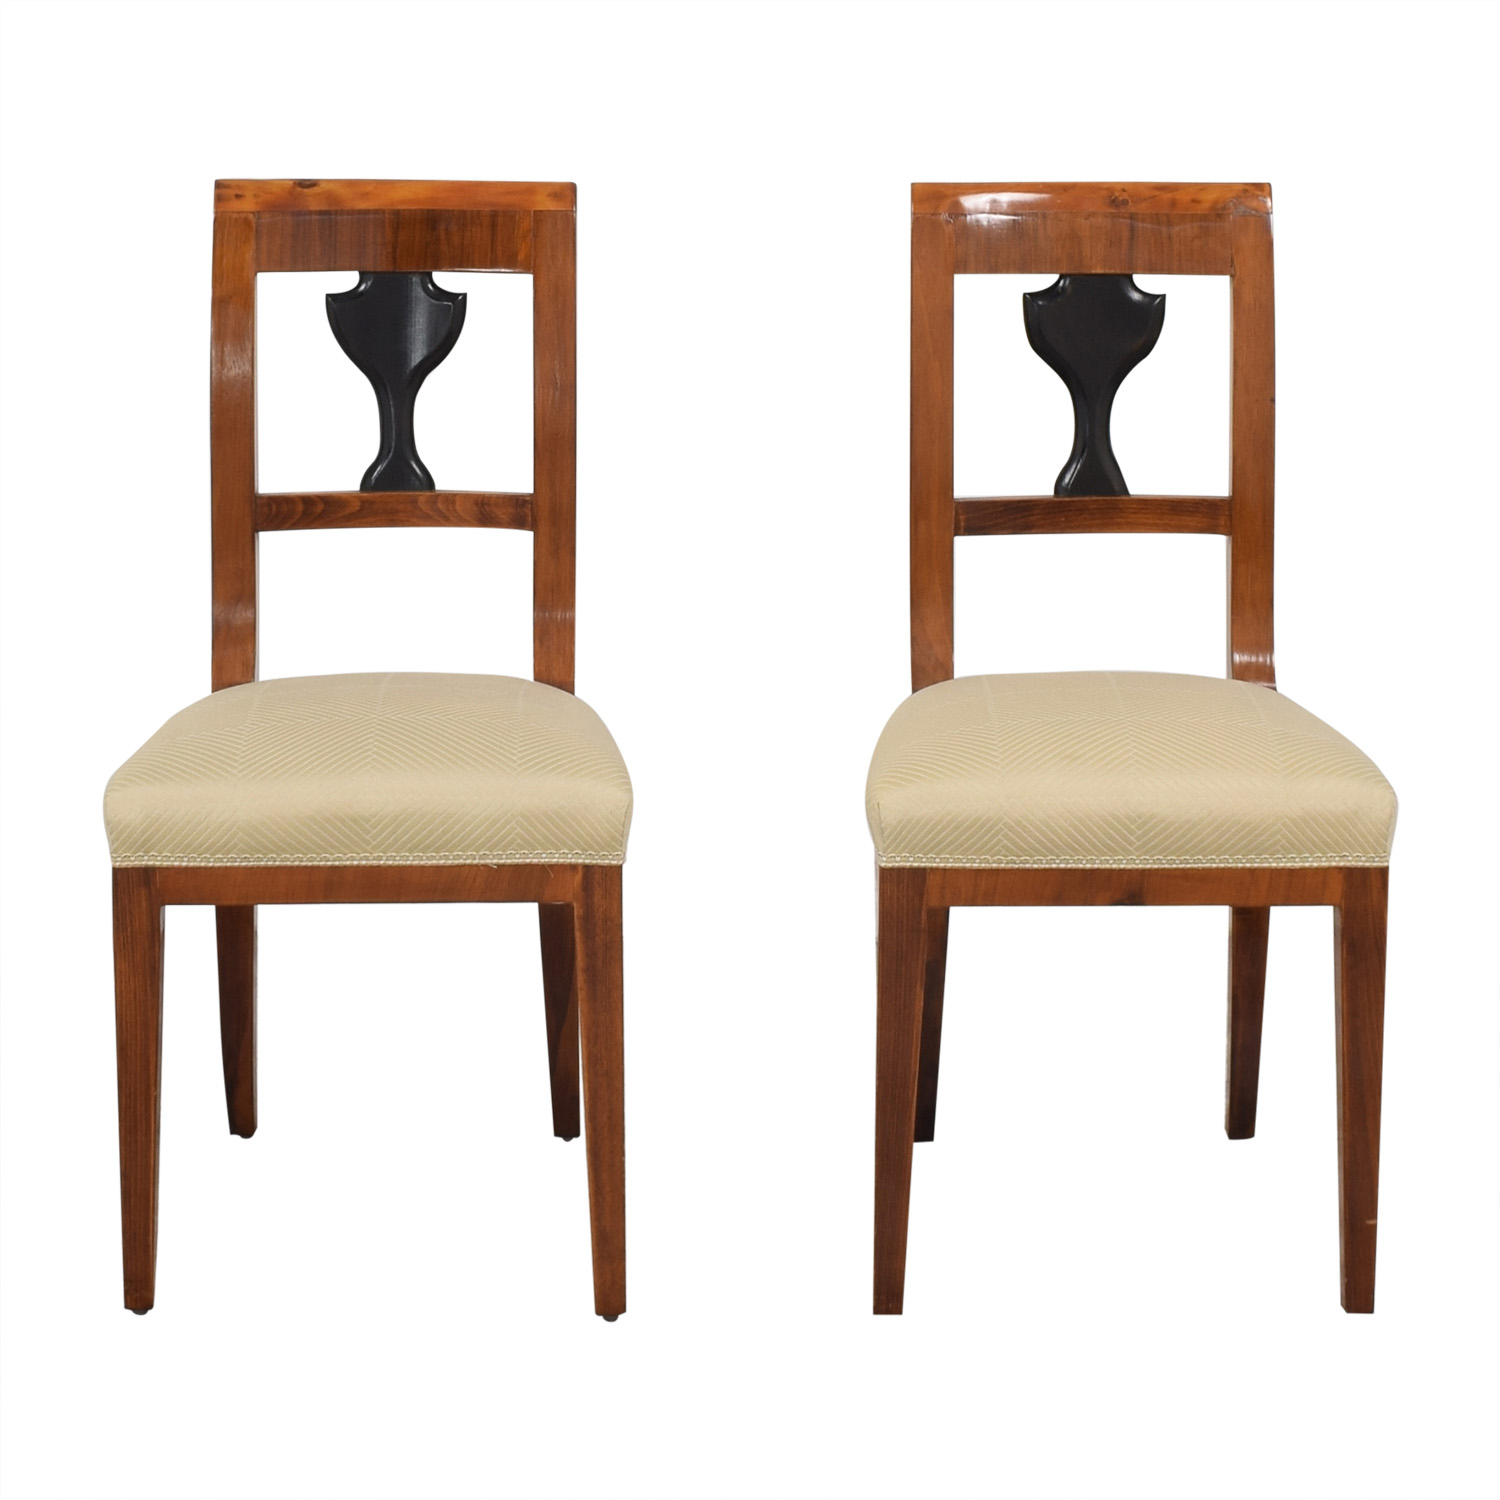 ABC Carpet & Home Upholstered Dining Chairs dimensions